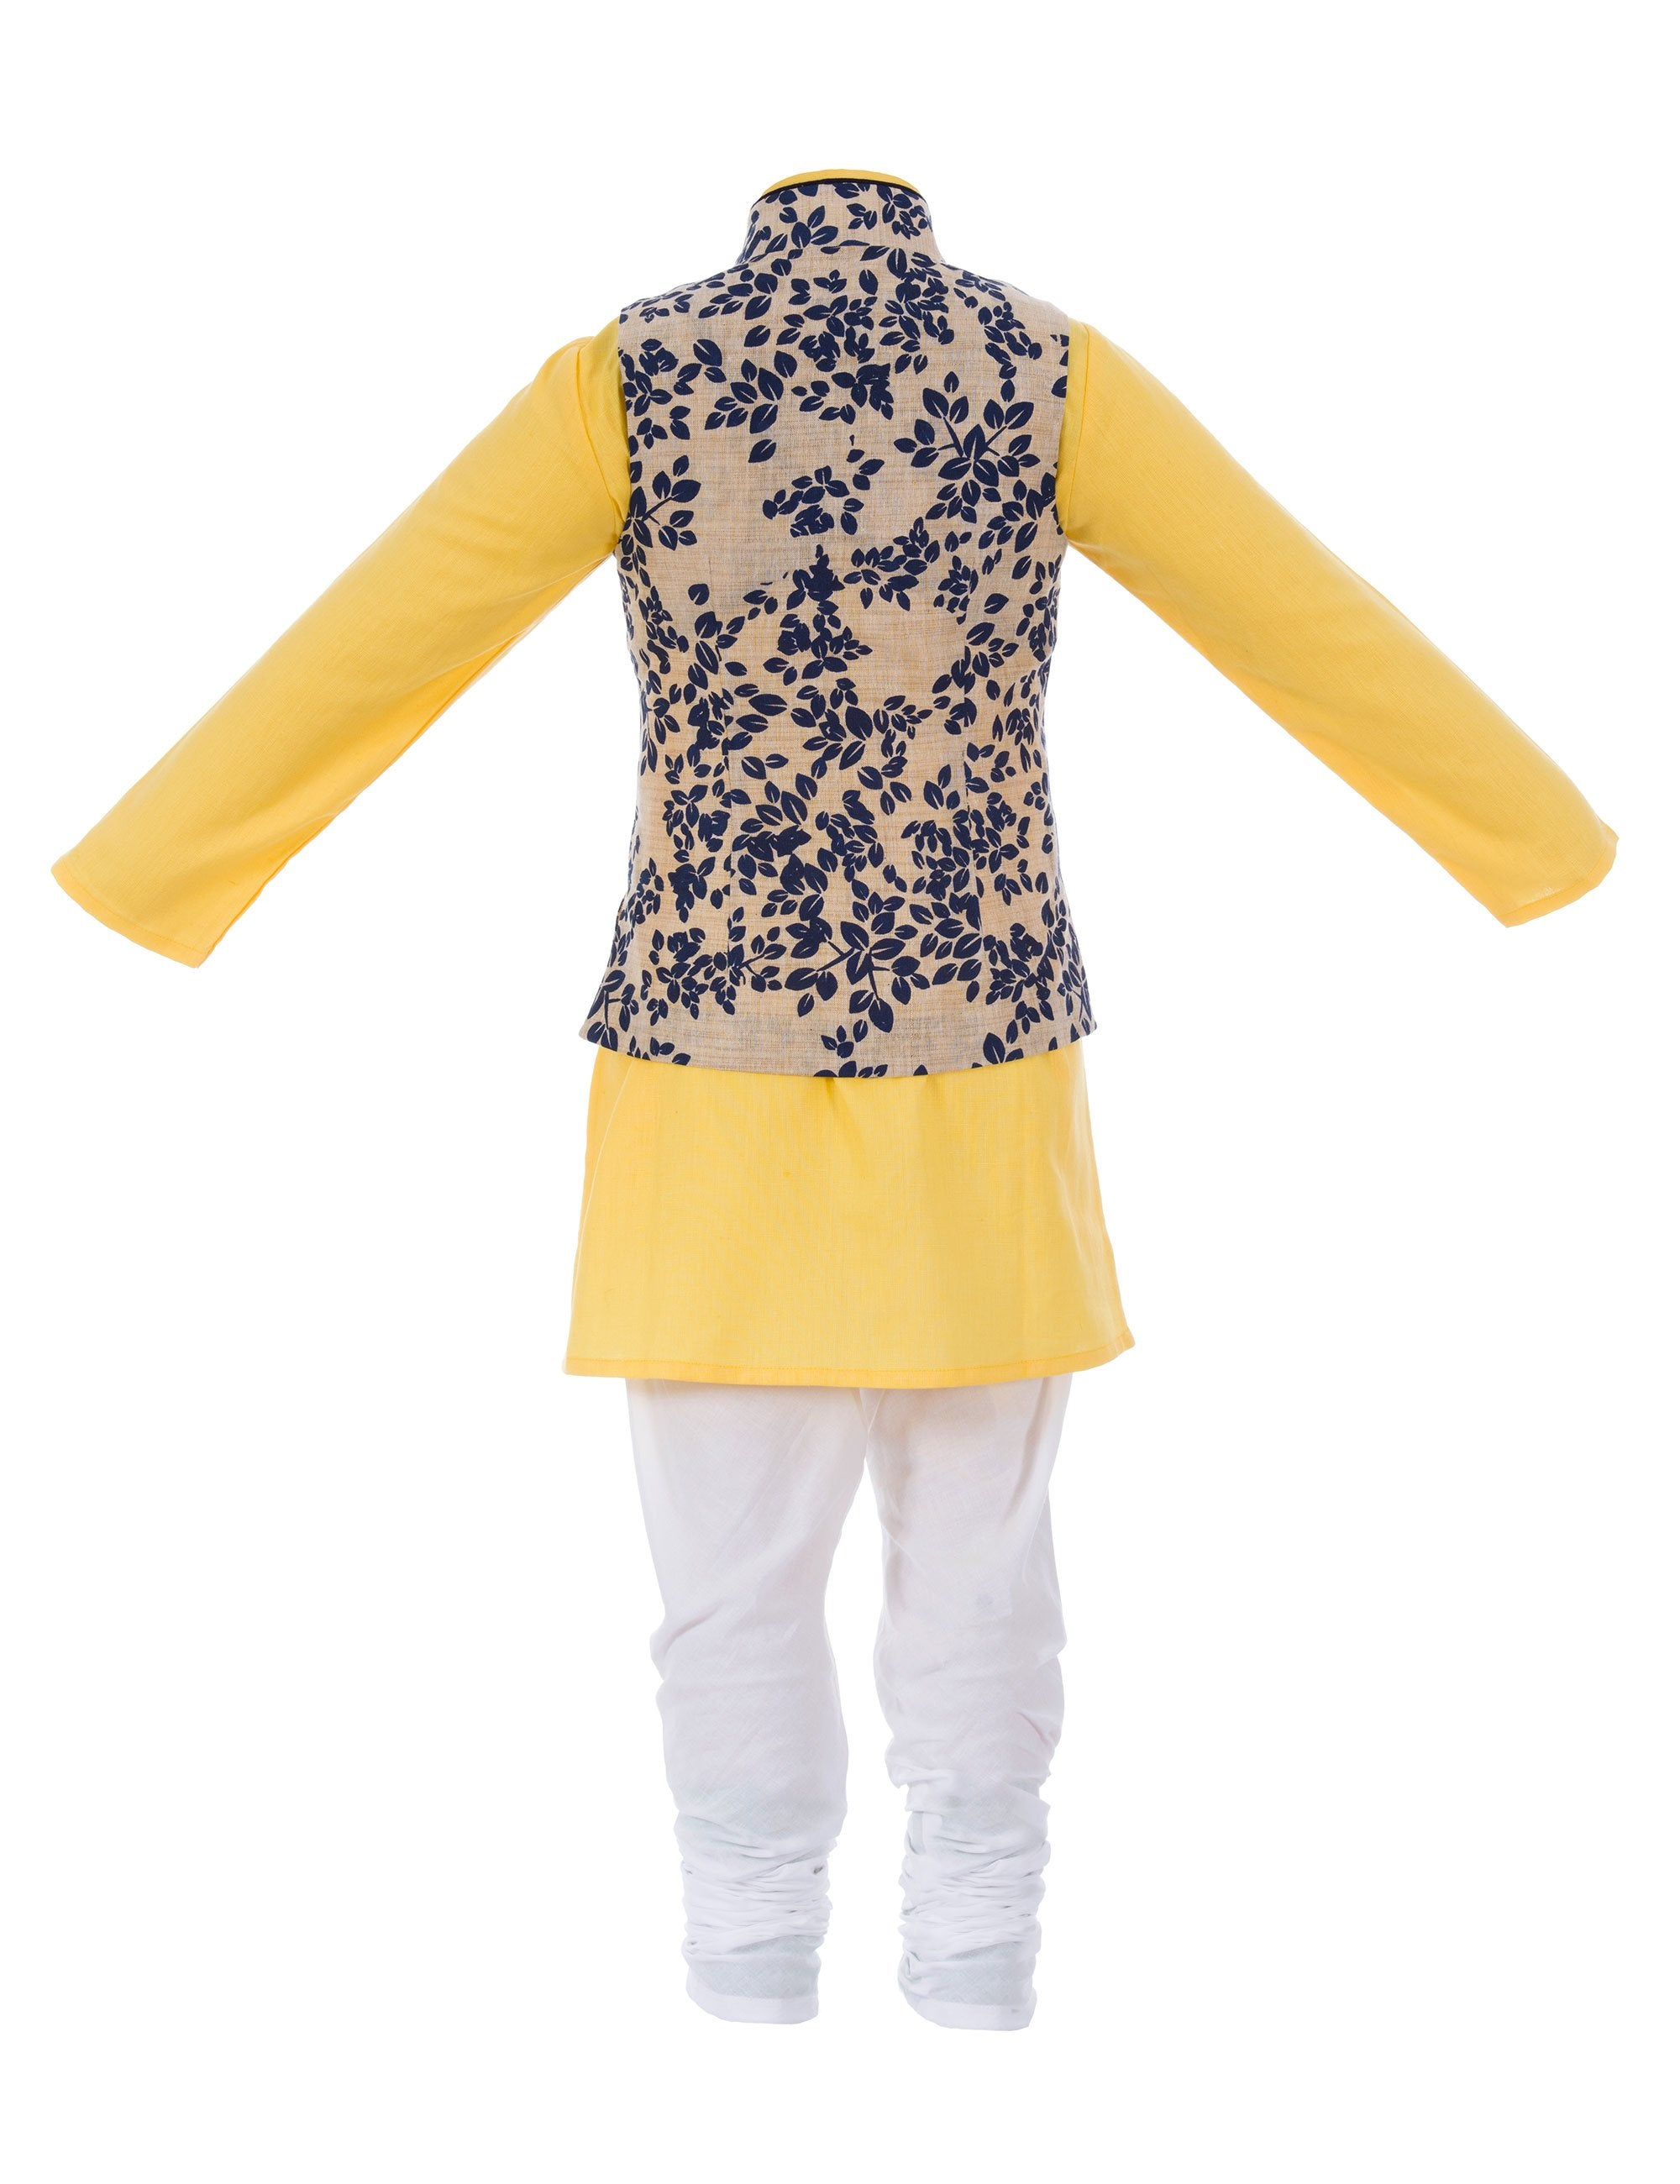 Khadi Kurta with Leaf Print Nehru Jacket in Yellow Colour for Boys